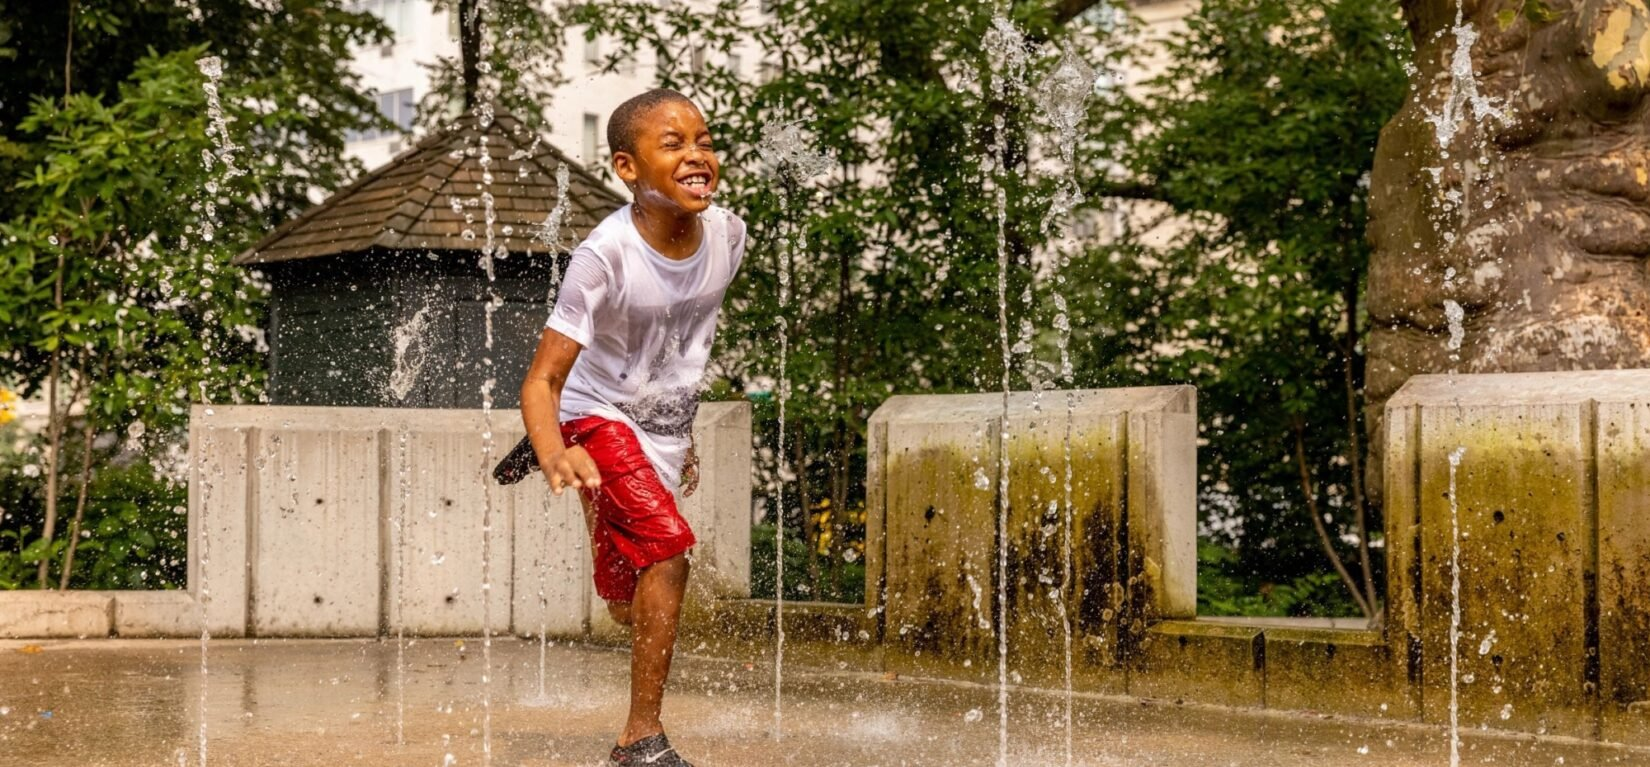 A young boy scrambles between water spouts in a Park playground.